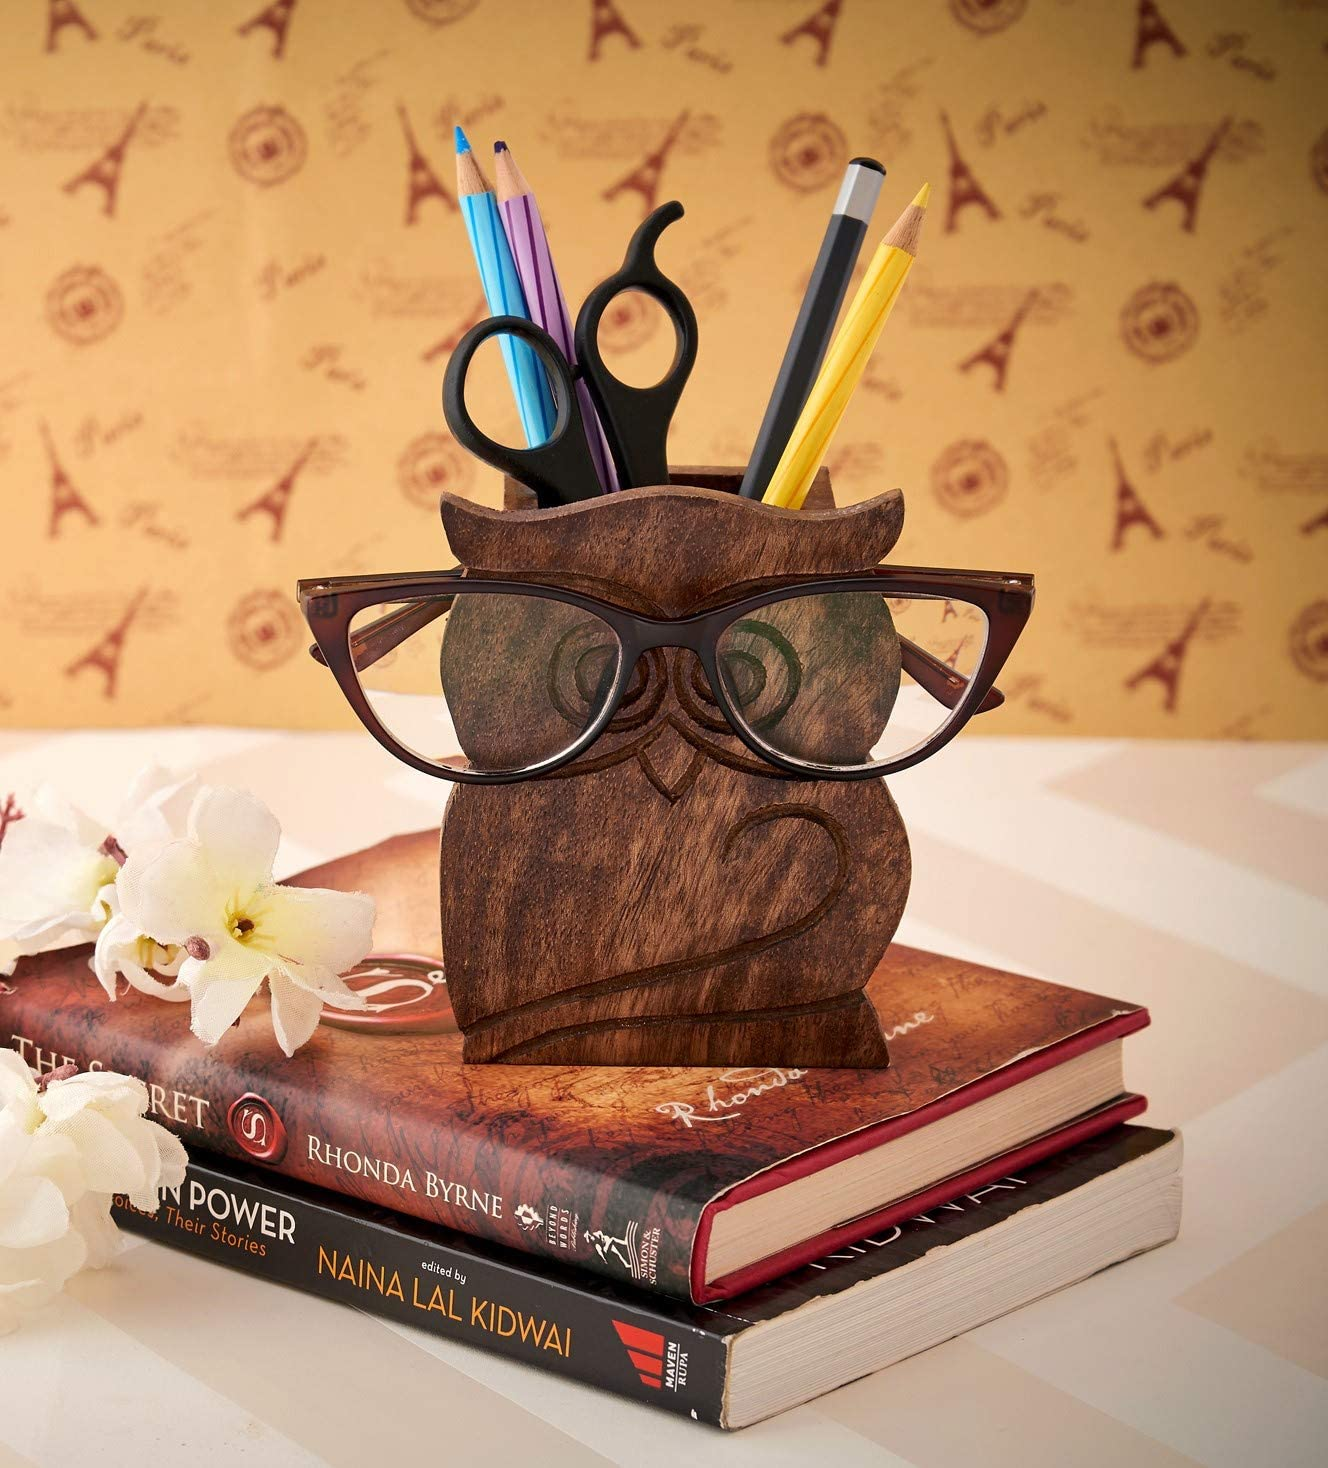 Eximious India PJ02 Owl Design Rustic Wood Pencil Holder Pen Cup Spectacle Eyeglasses Holder Desk Caddy Organizer Office Supplies Accessories Gift Ideas Office Coworkers